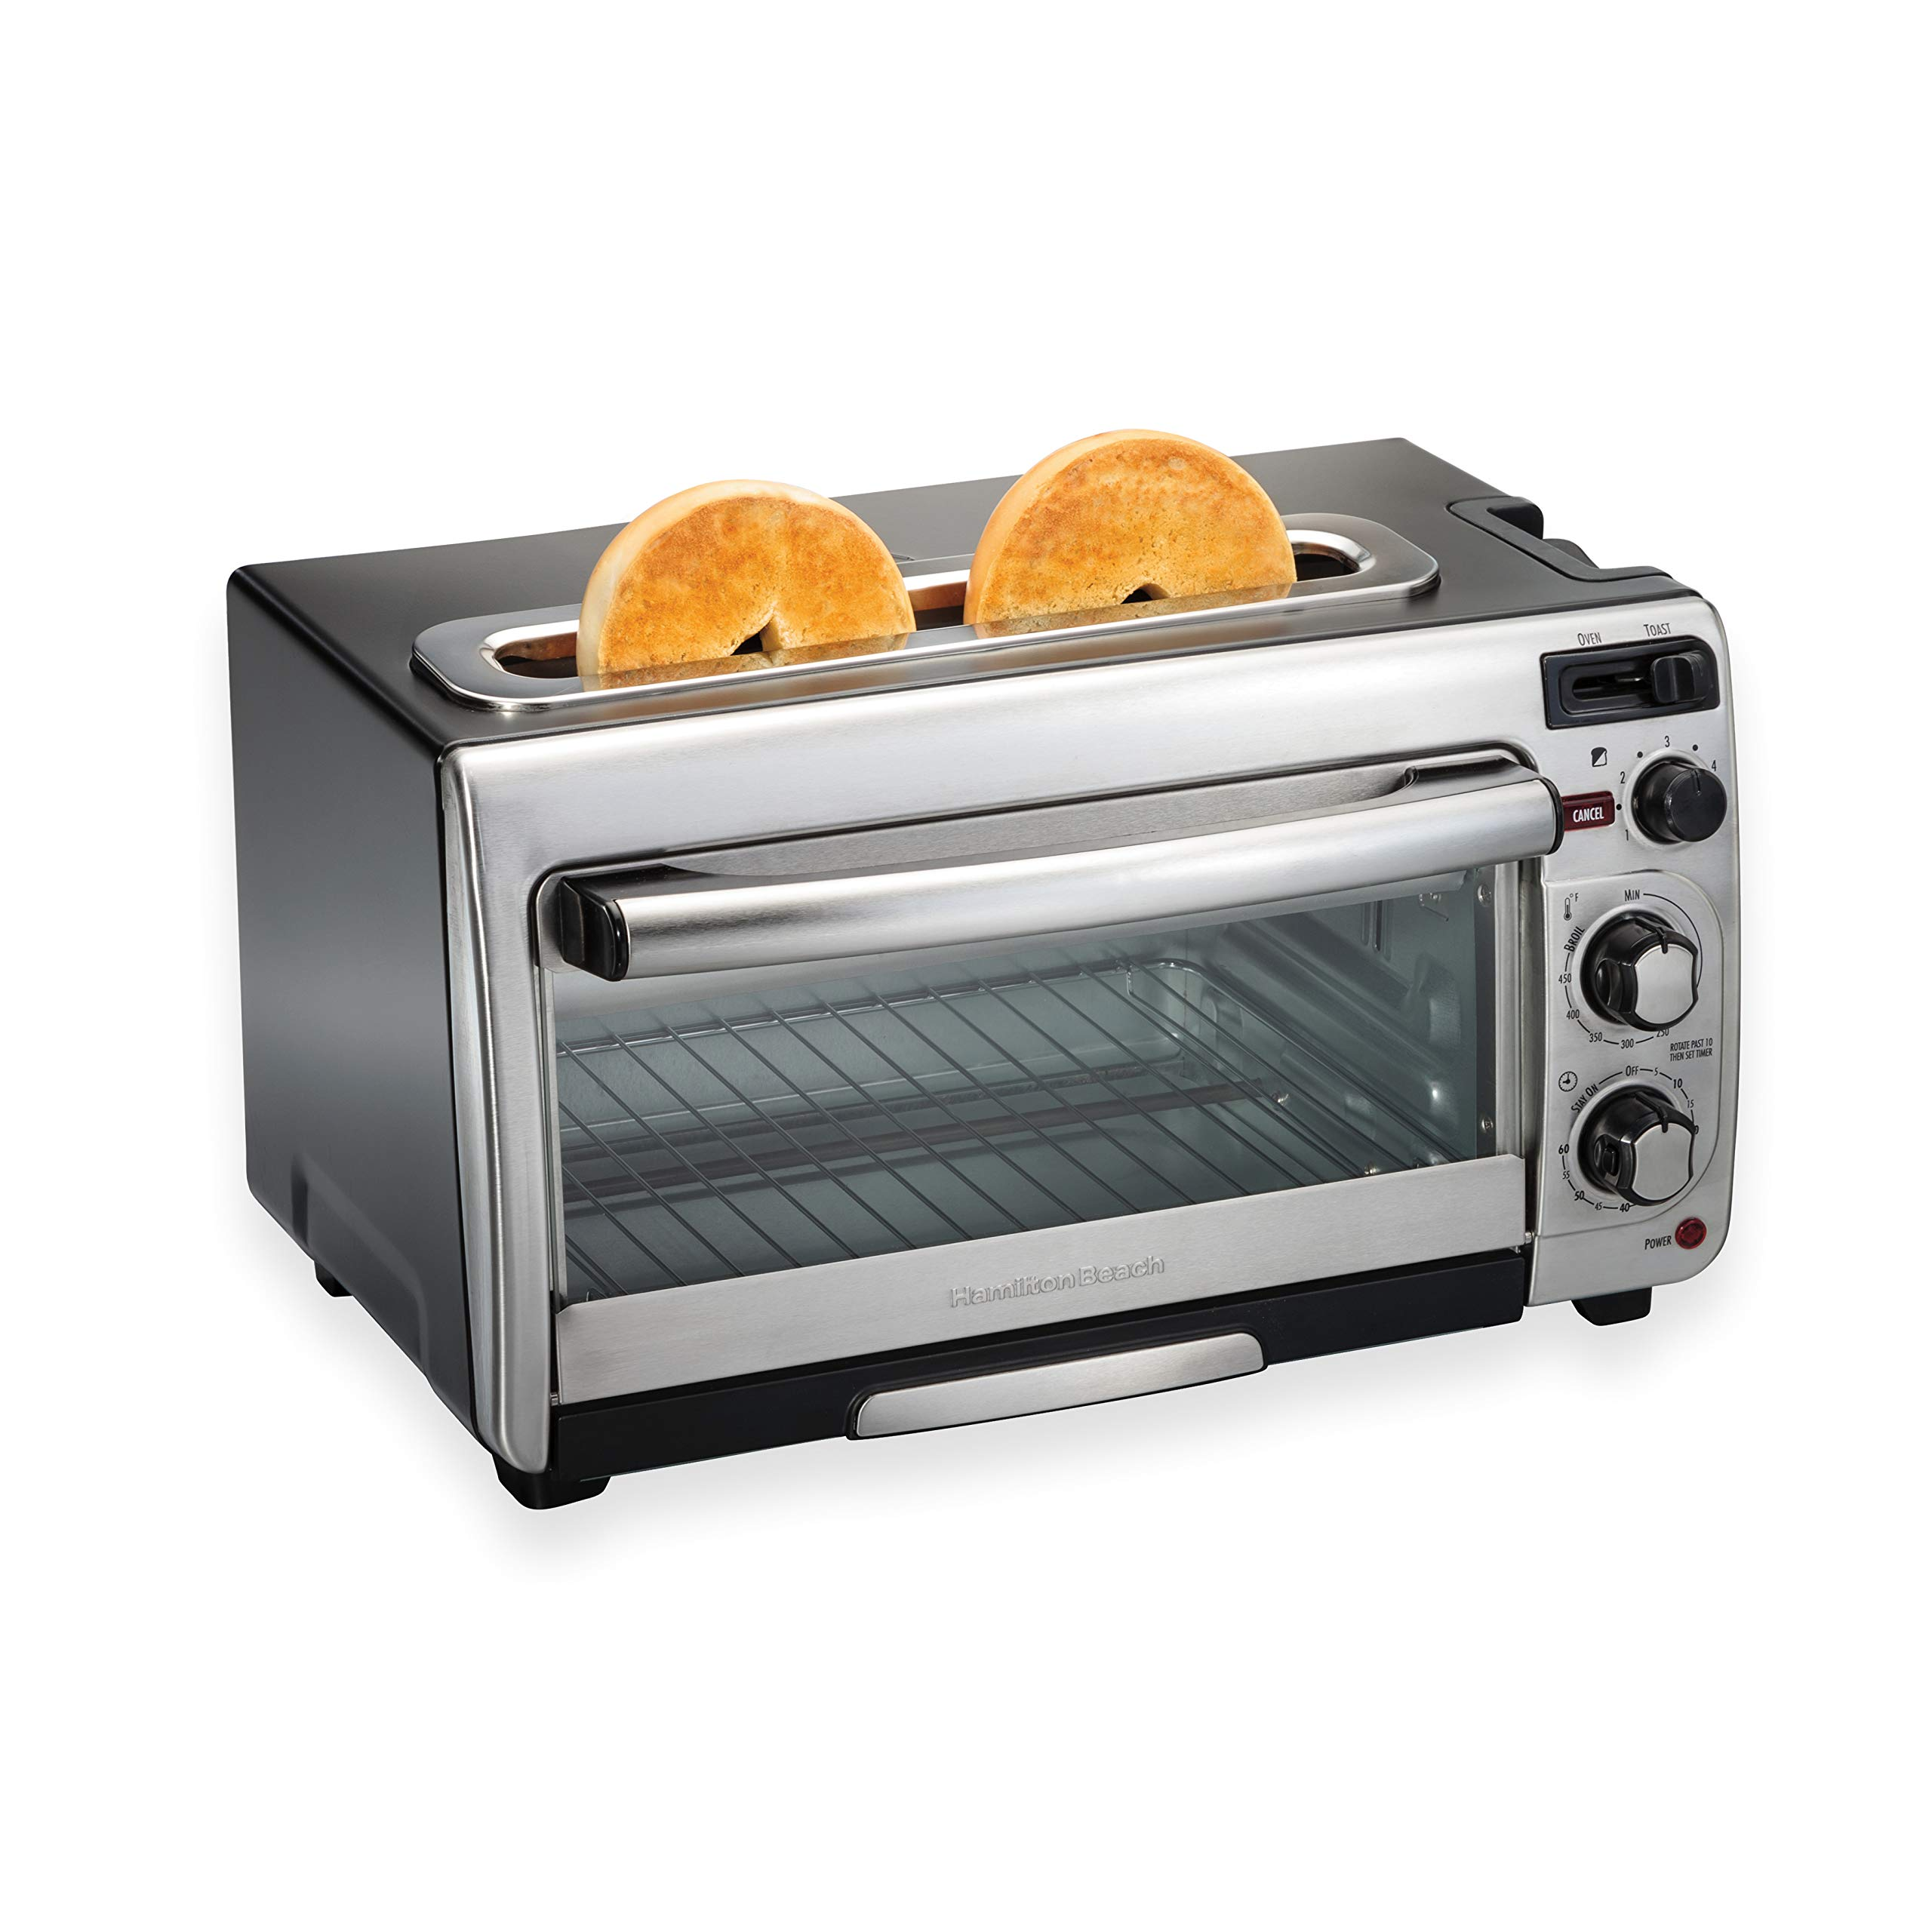 Hamilton Beach 2-In-1 Countertop Oven And Long Slot Toaster, Stainless Steel, 60 Minute Timer And Automatic Shut Off (31156), Large by Hamilton Beach